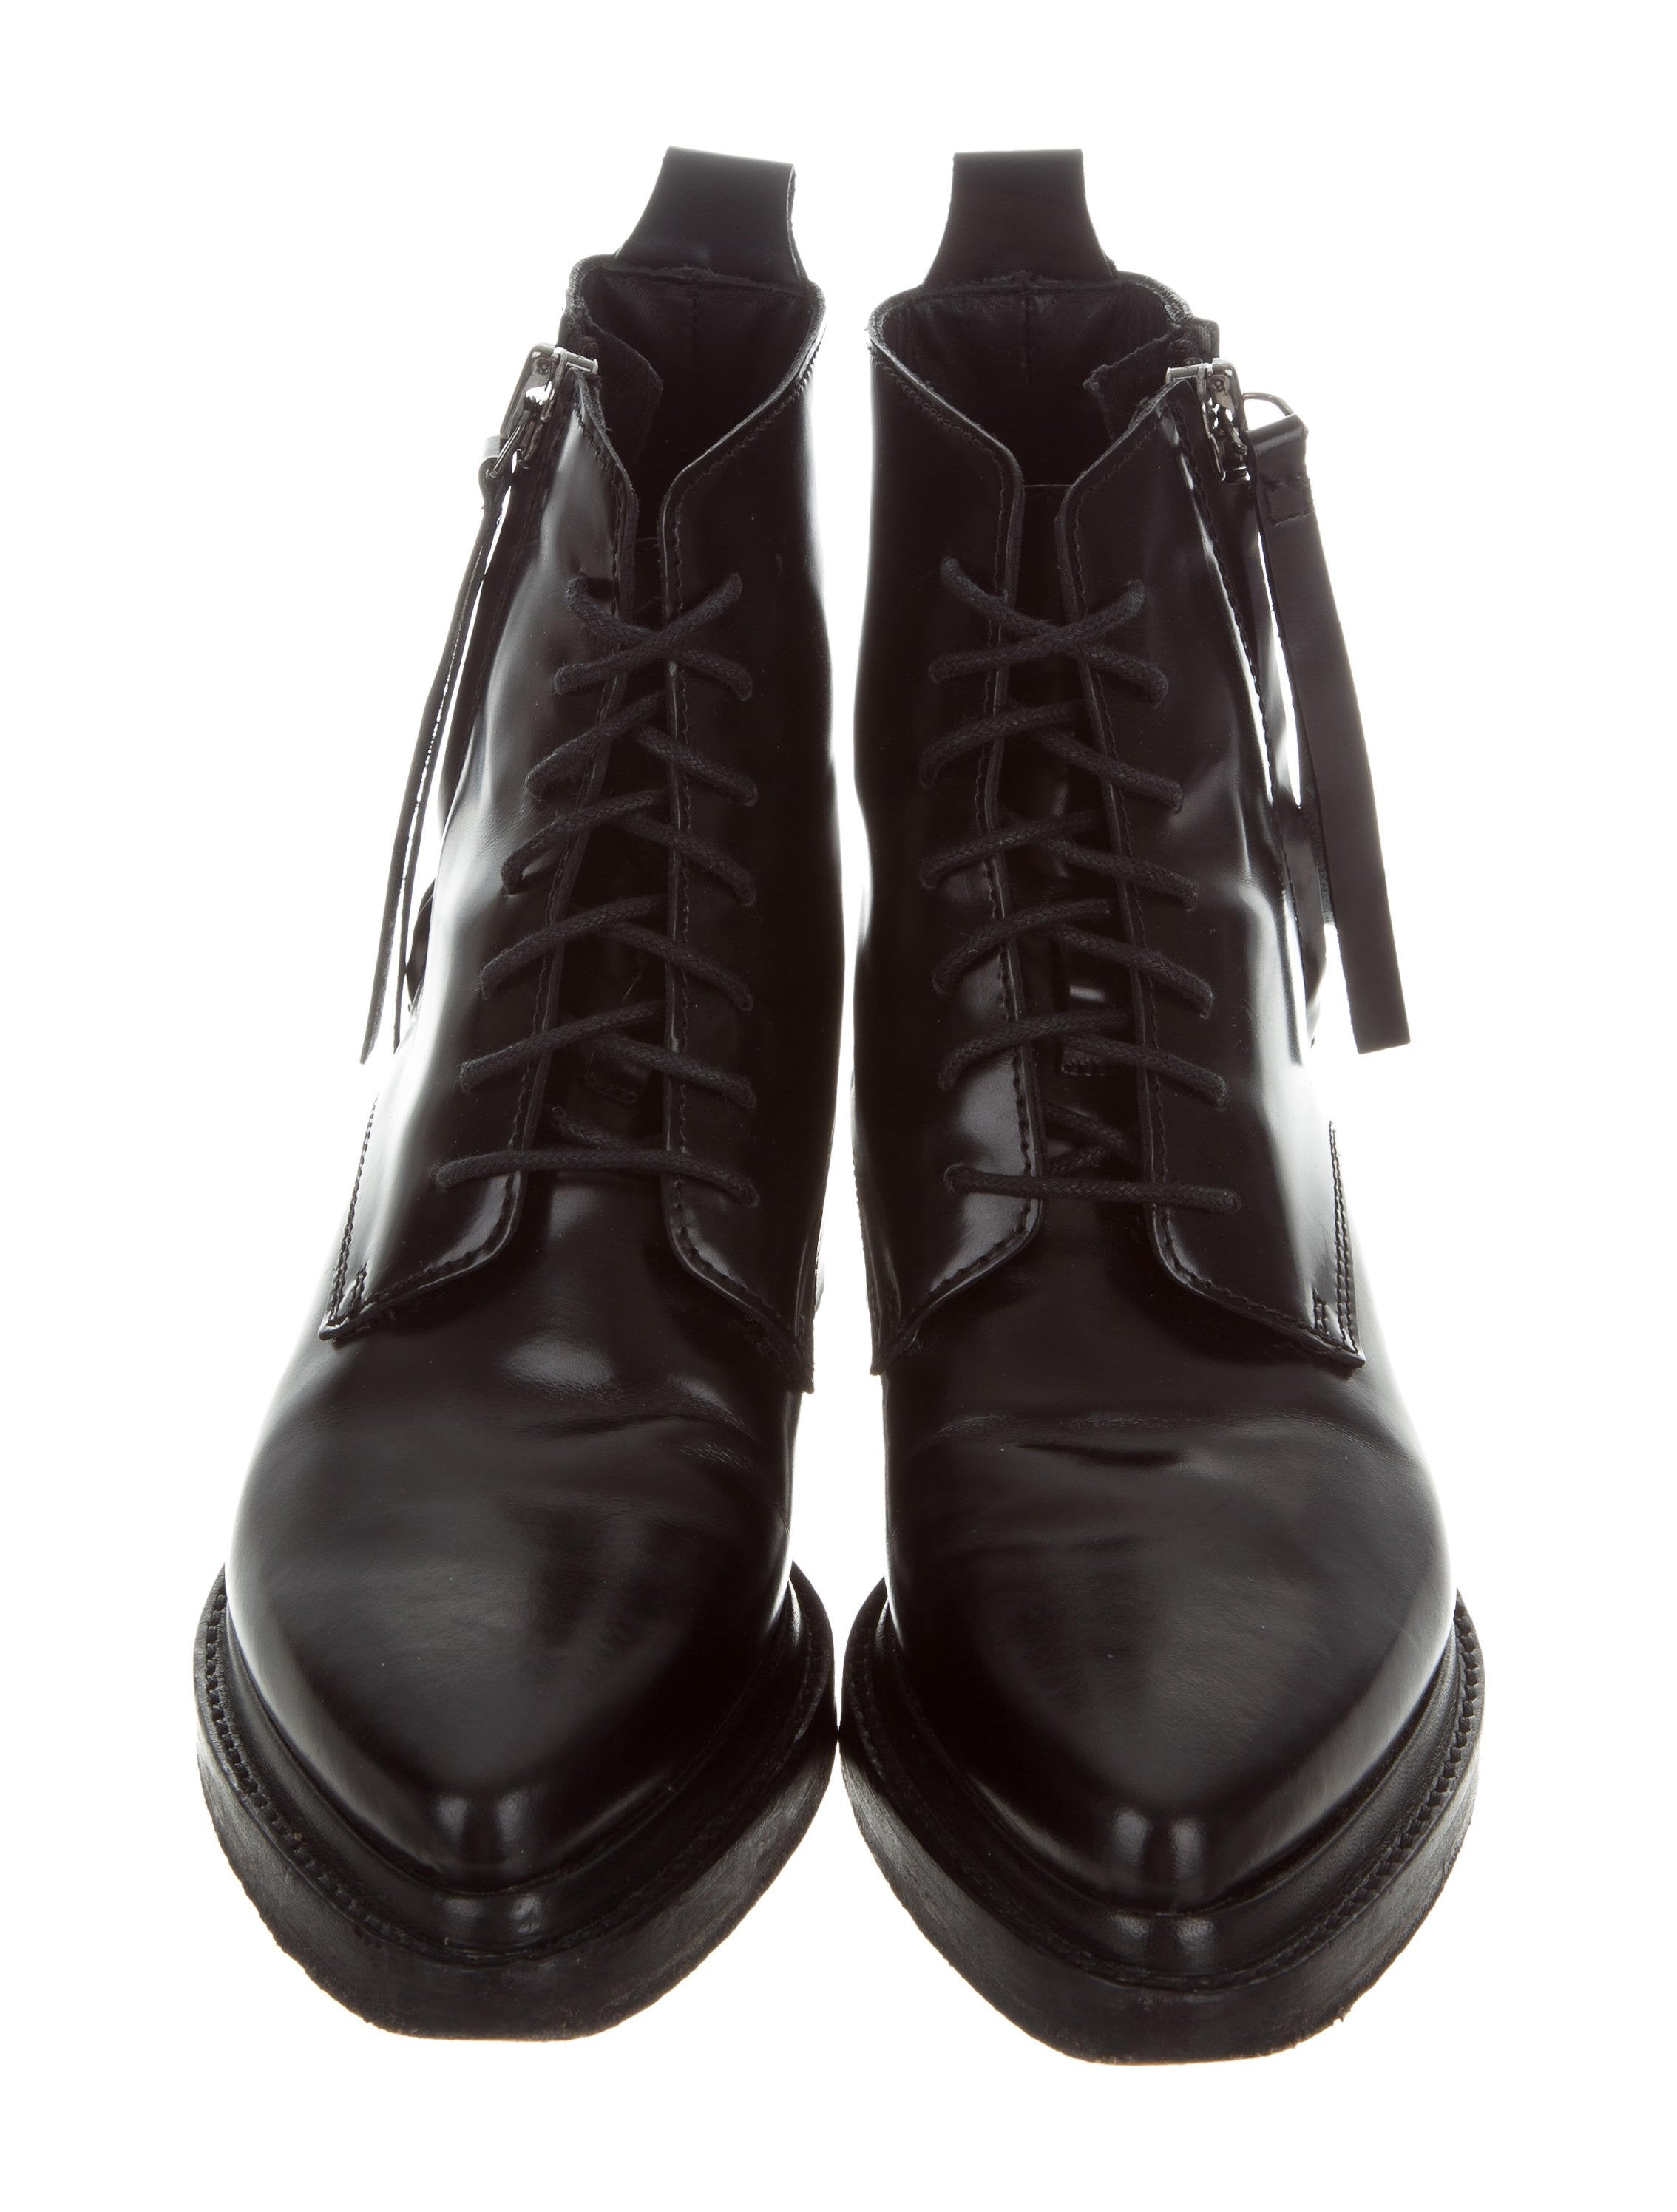 acne studios leather lace up ankle boots shoes